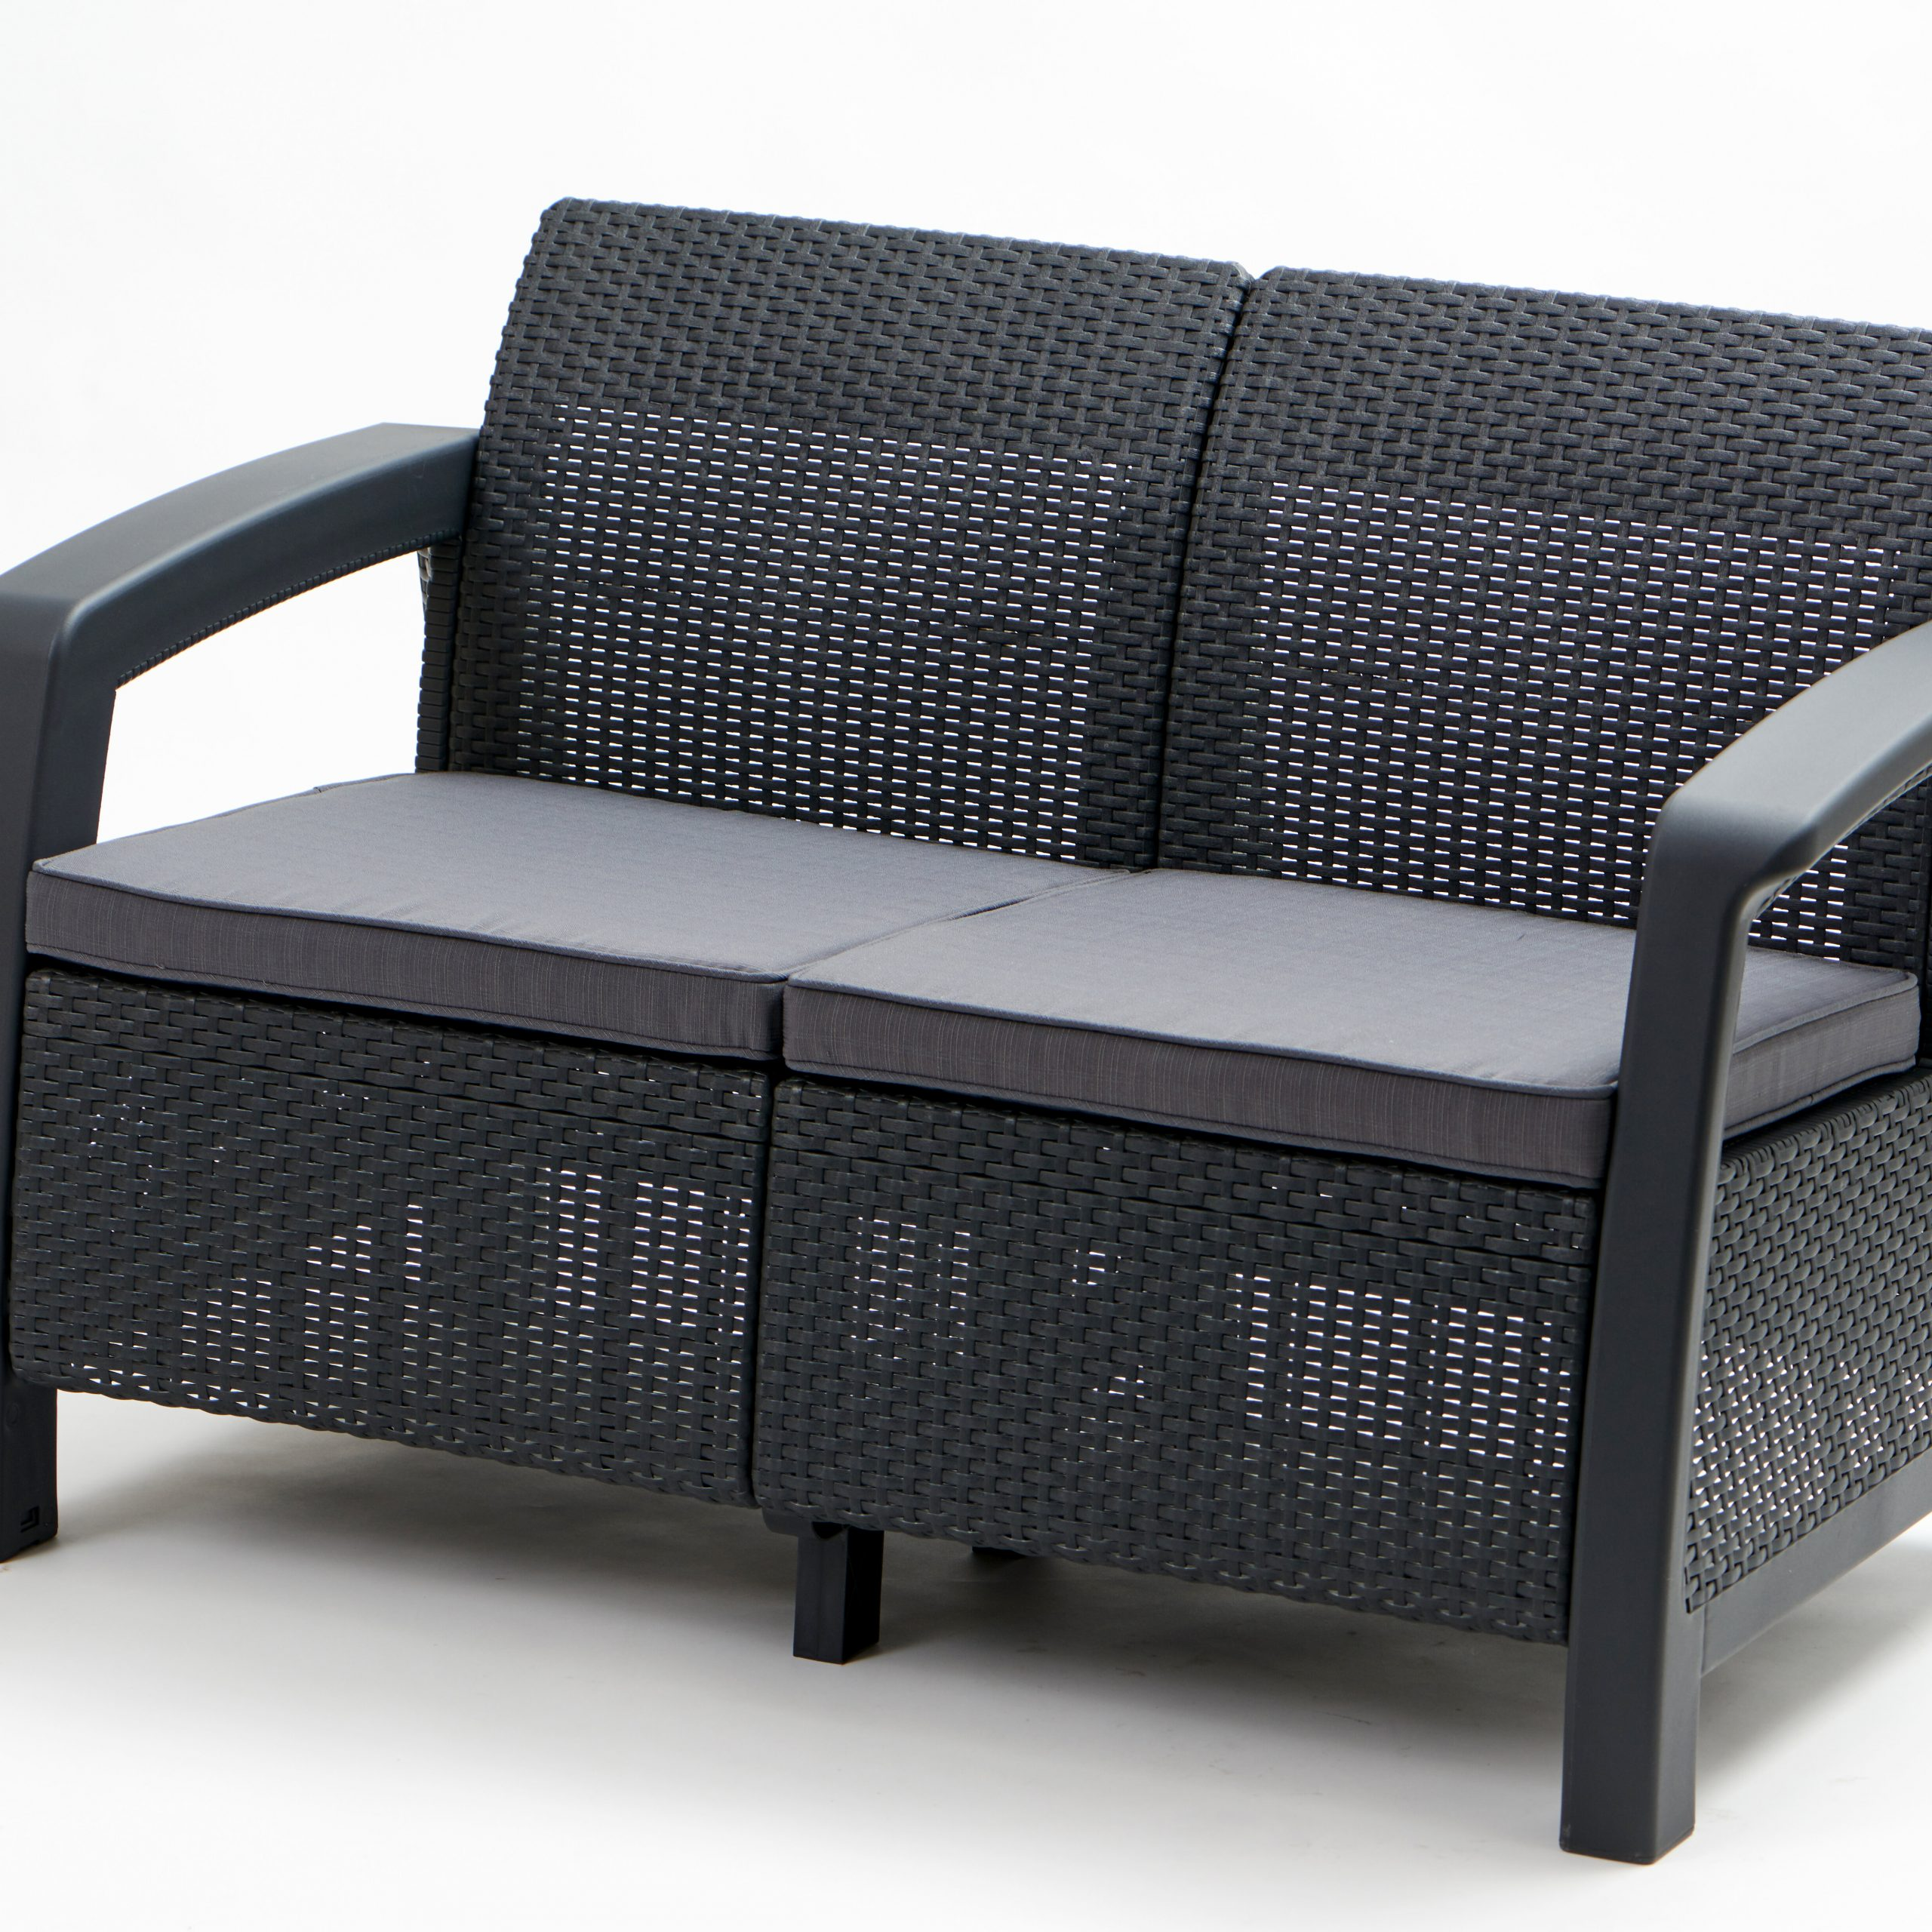 Wayfair Intended For Current Wakeland Wicker Loveseats With Cushions (Gallery 11 of 25)